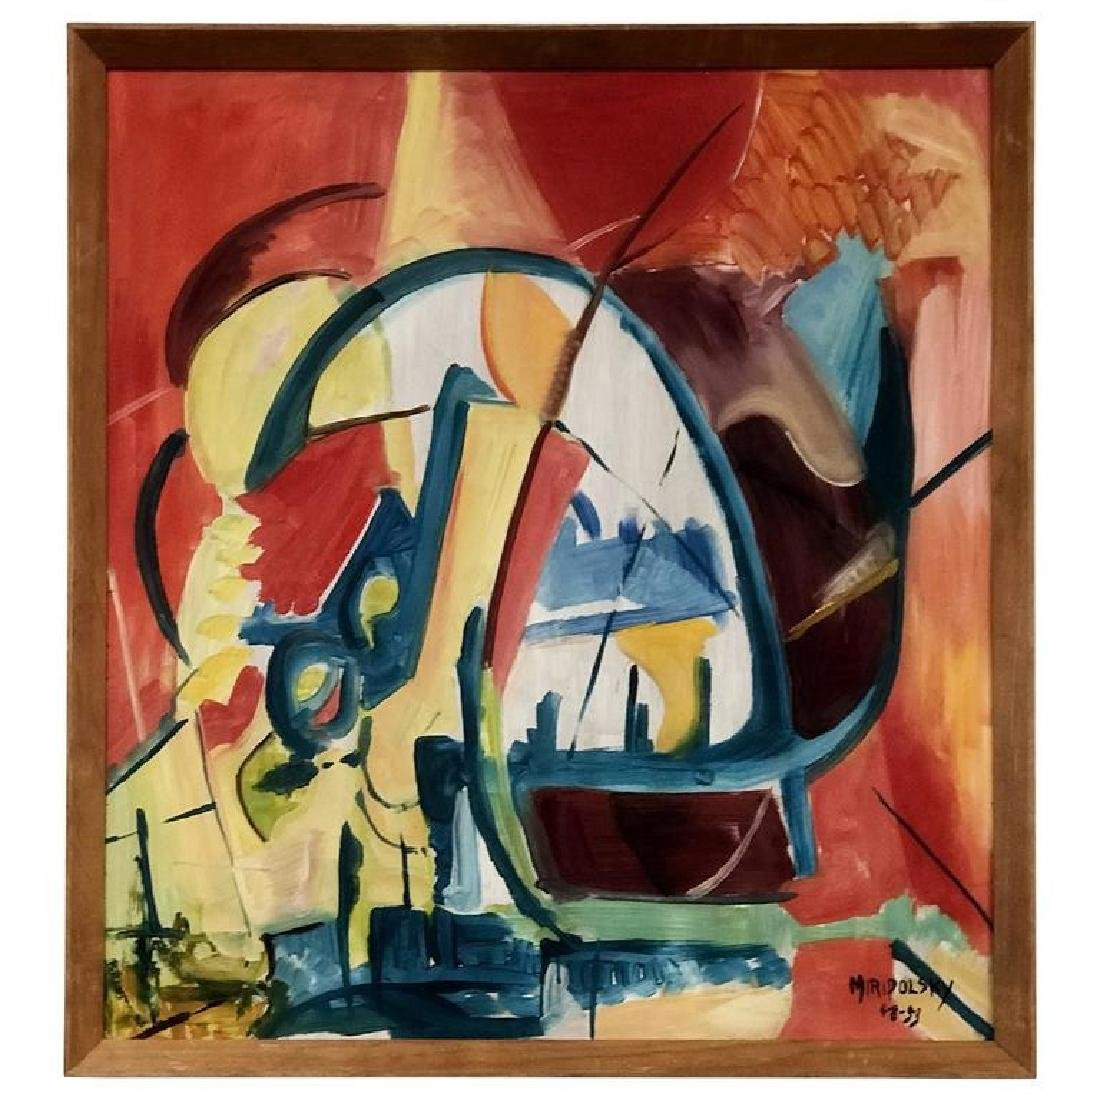 Dynamic Abstract Oil Painting by Bert Miripolsky